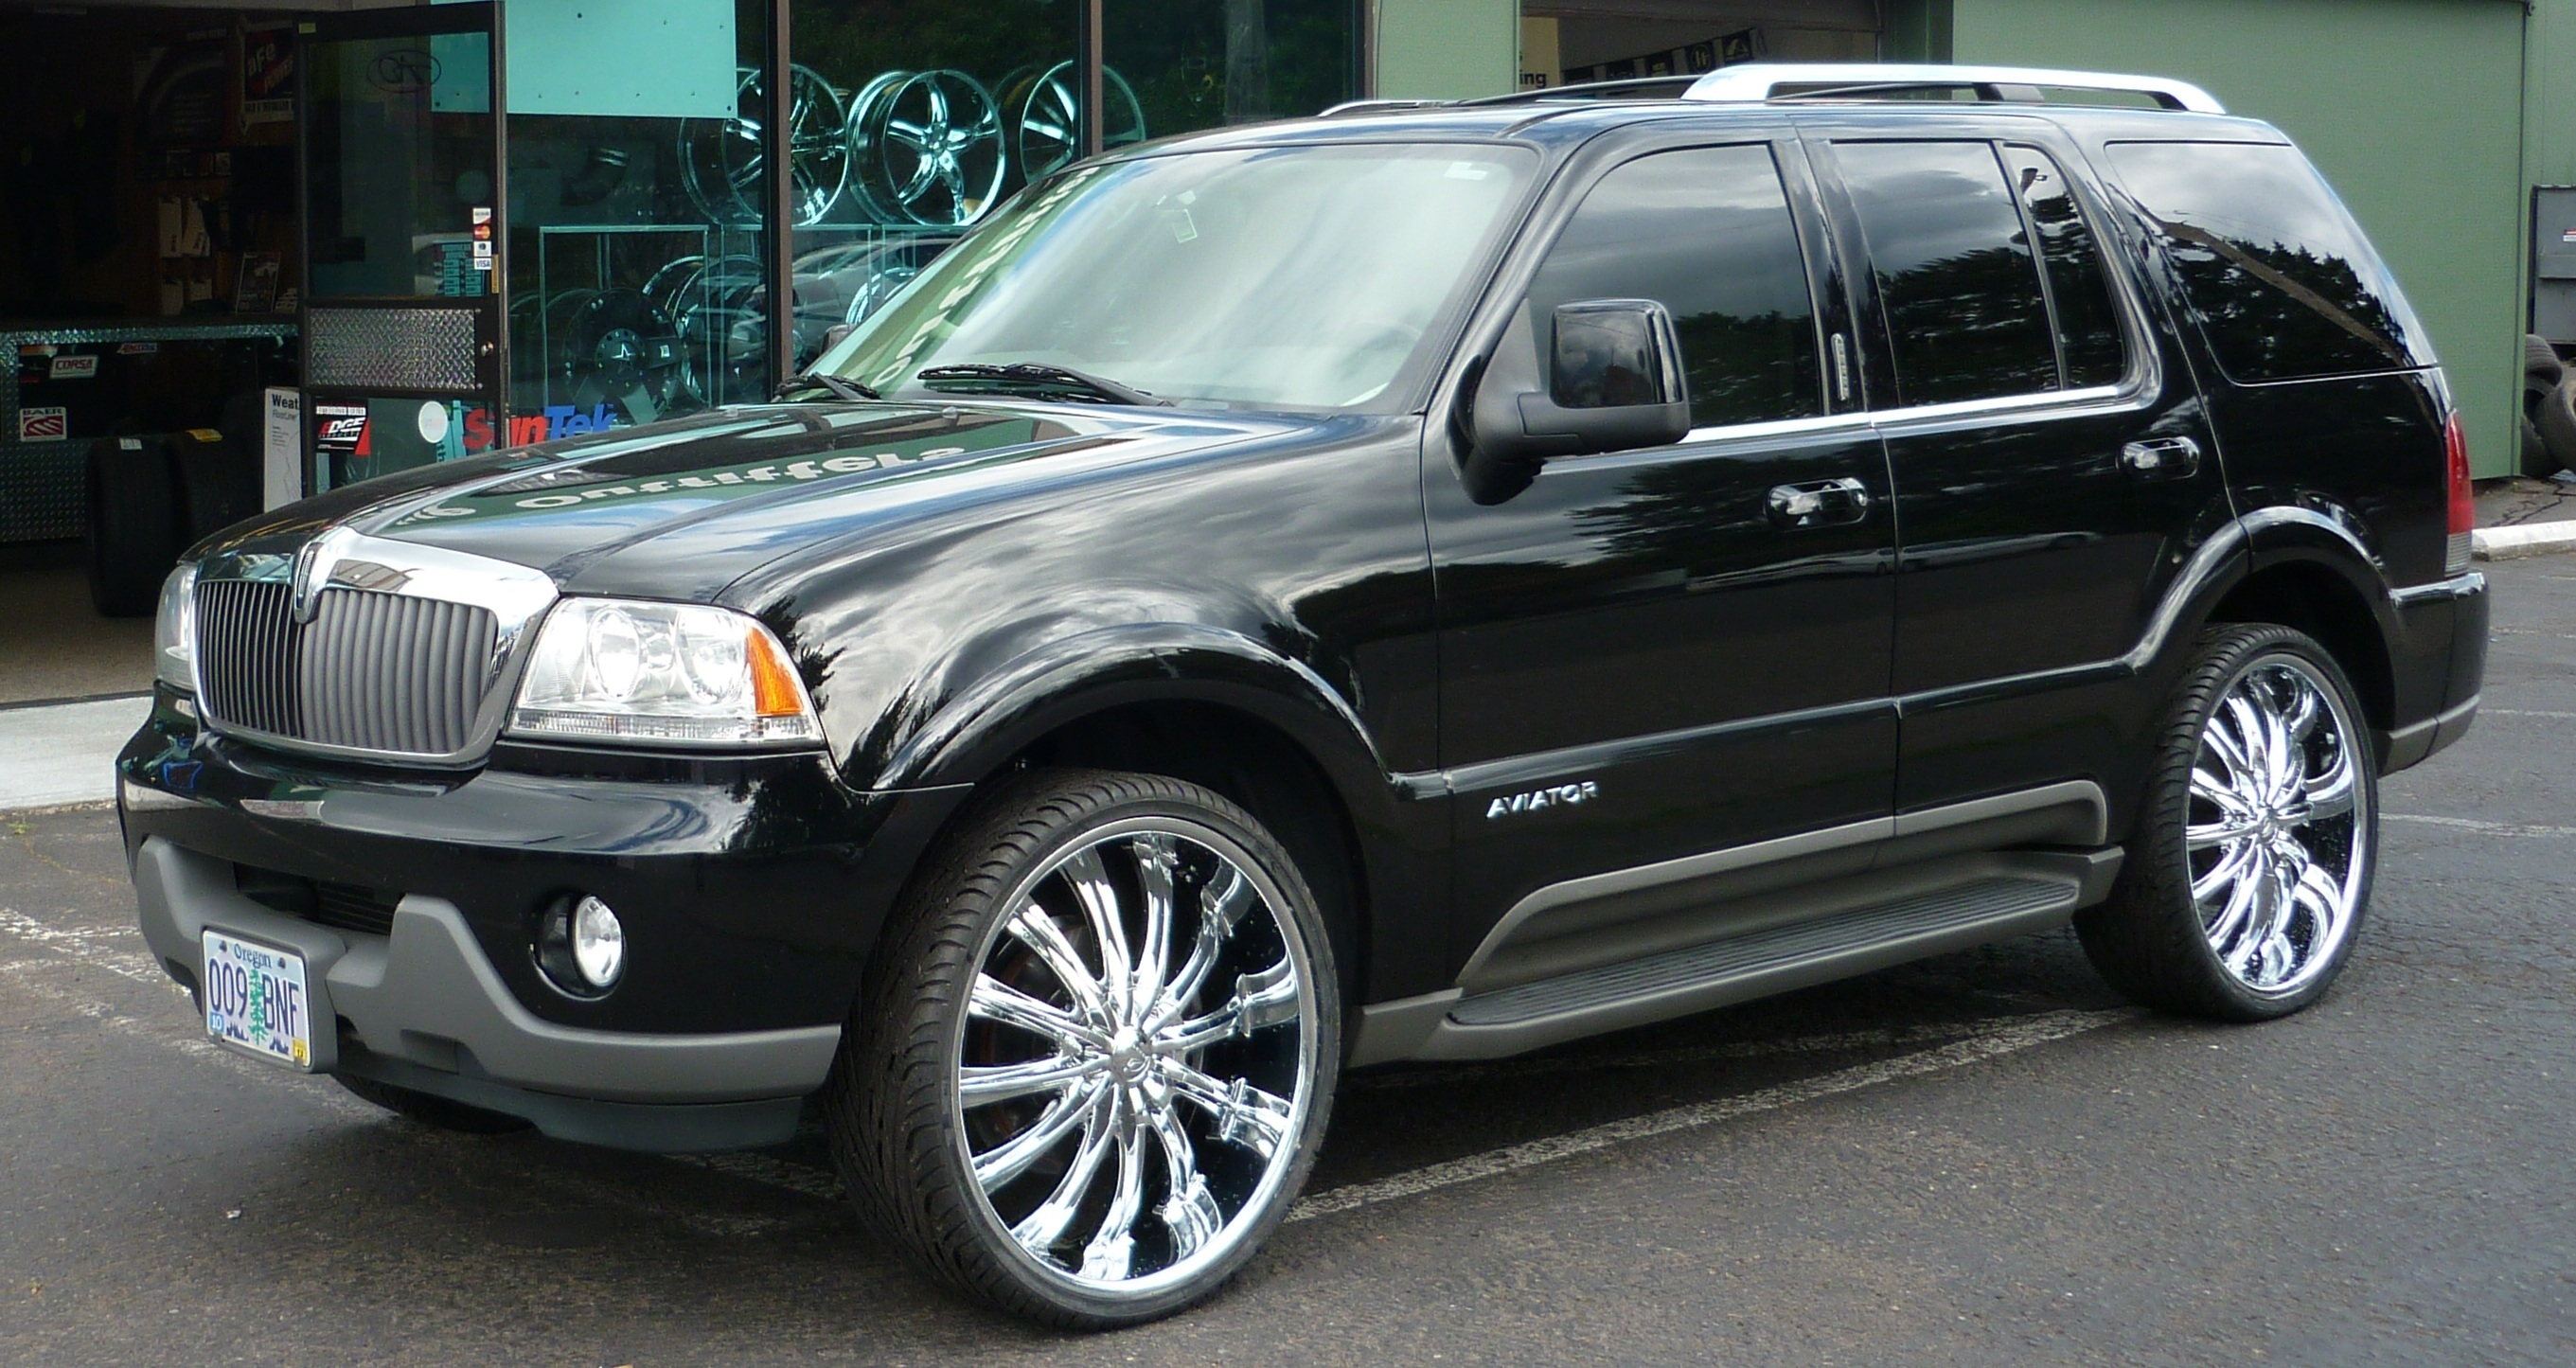 Baylee503's 2004 Lincoln Aviator Luxury Sport Utility 4D in